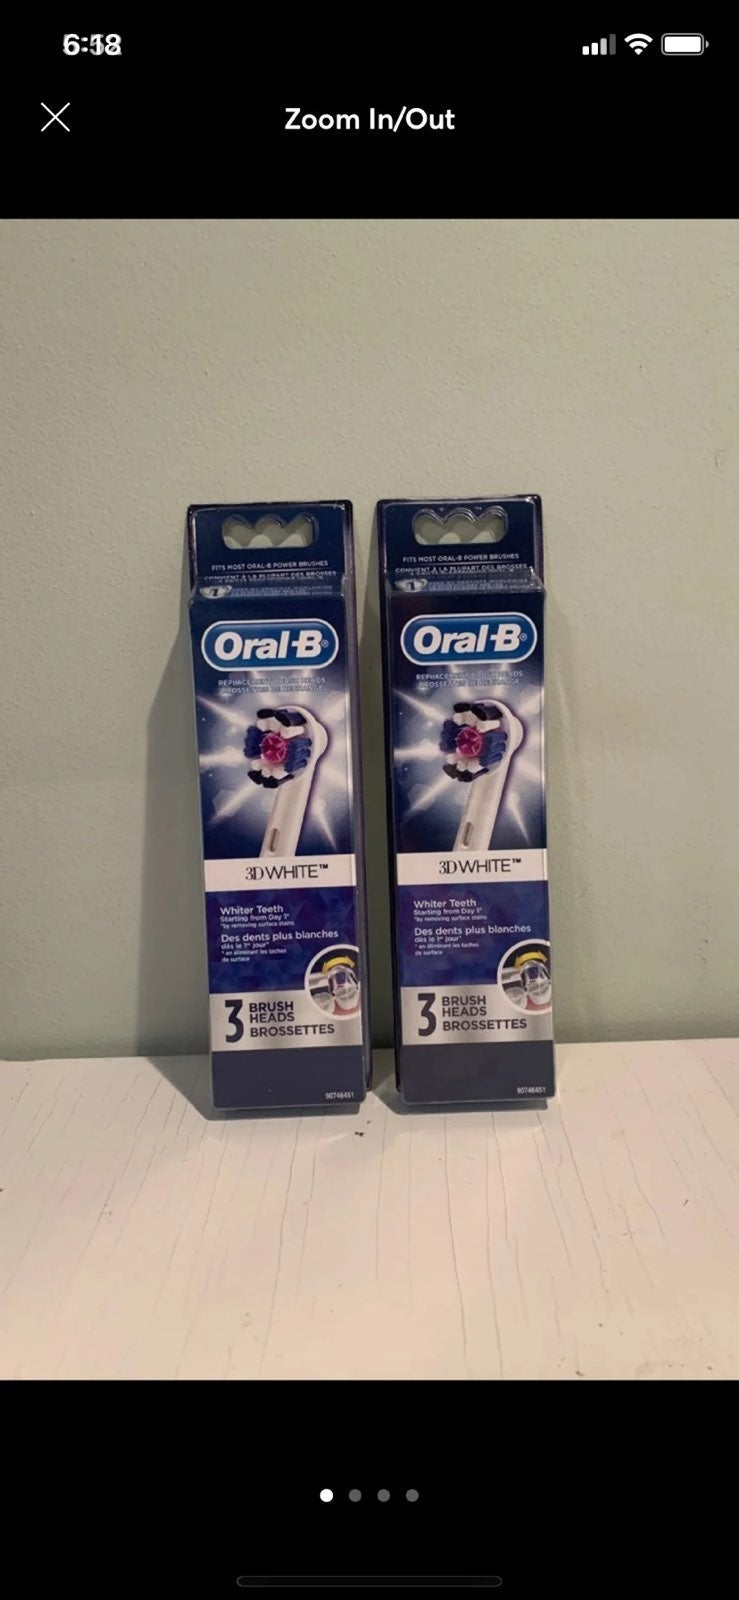 Oral-B 3D white replacement brush heads